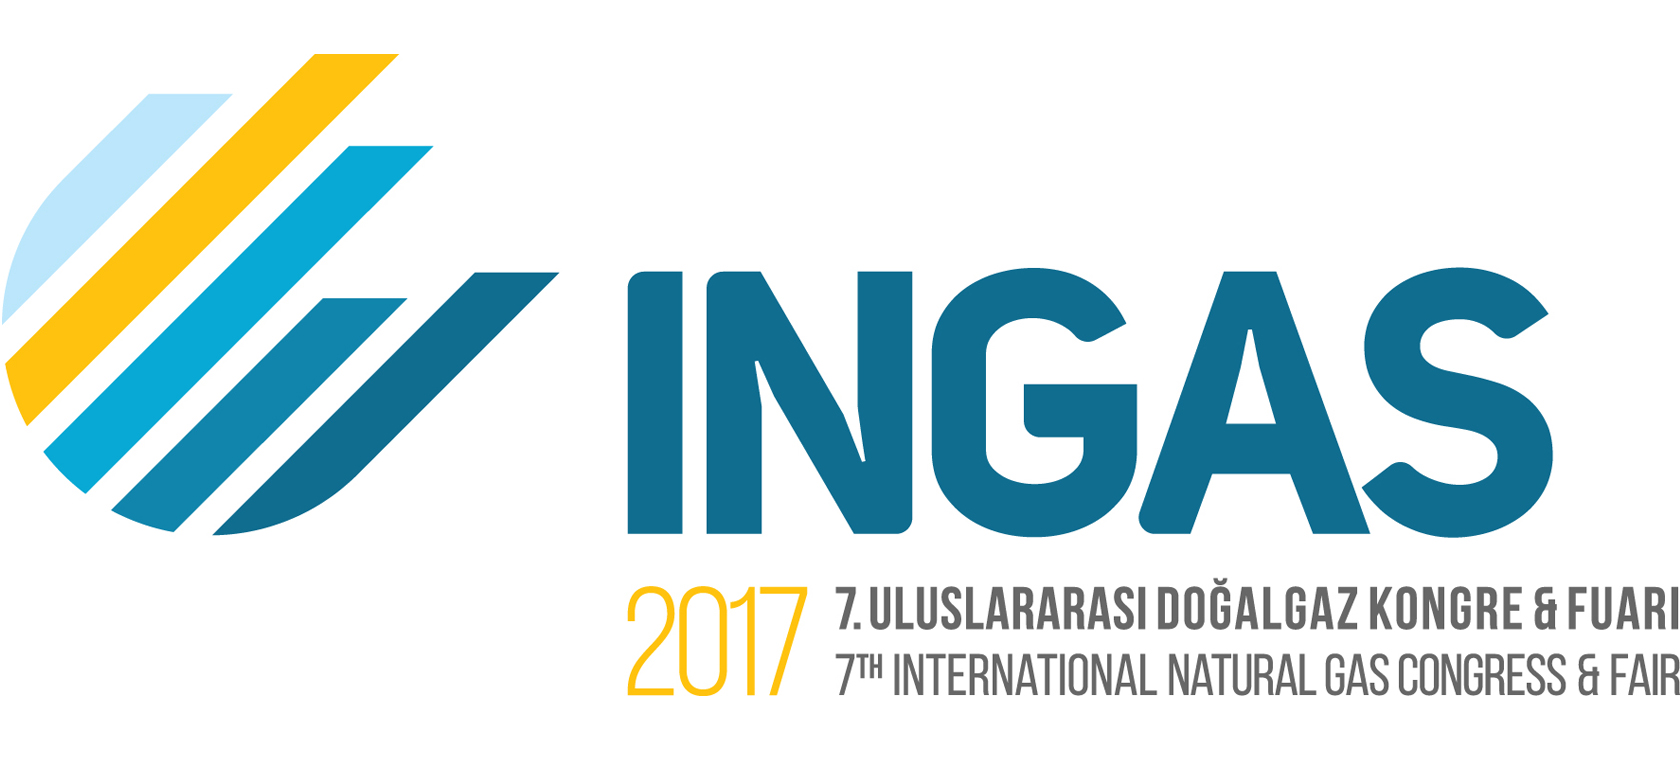 INGAS 2017 - pulse of natural gas